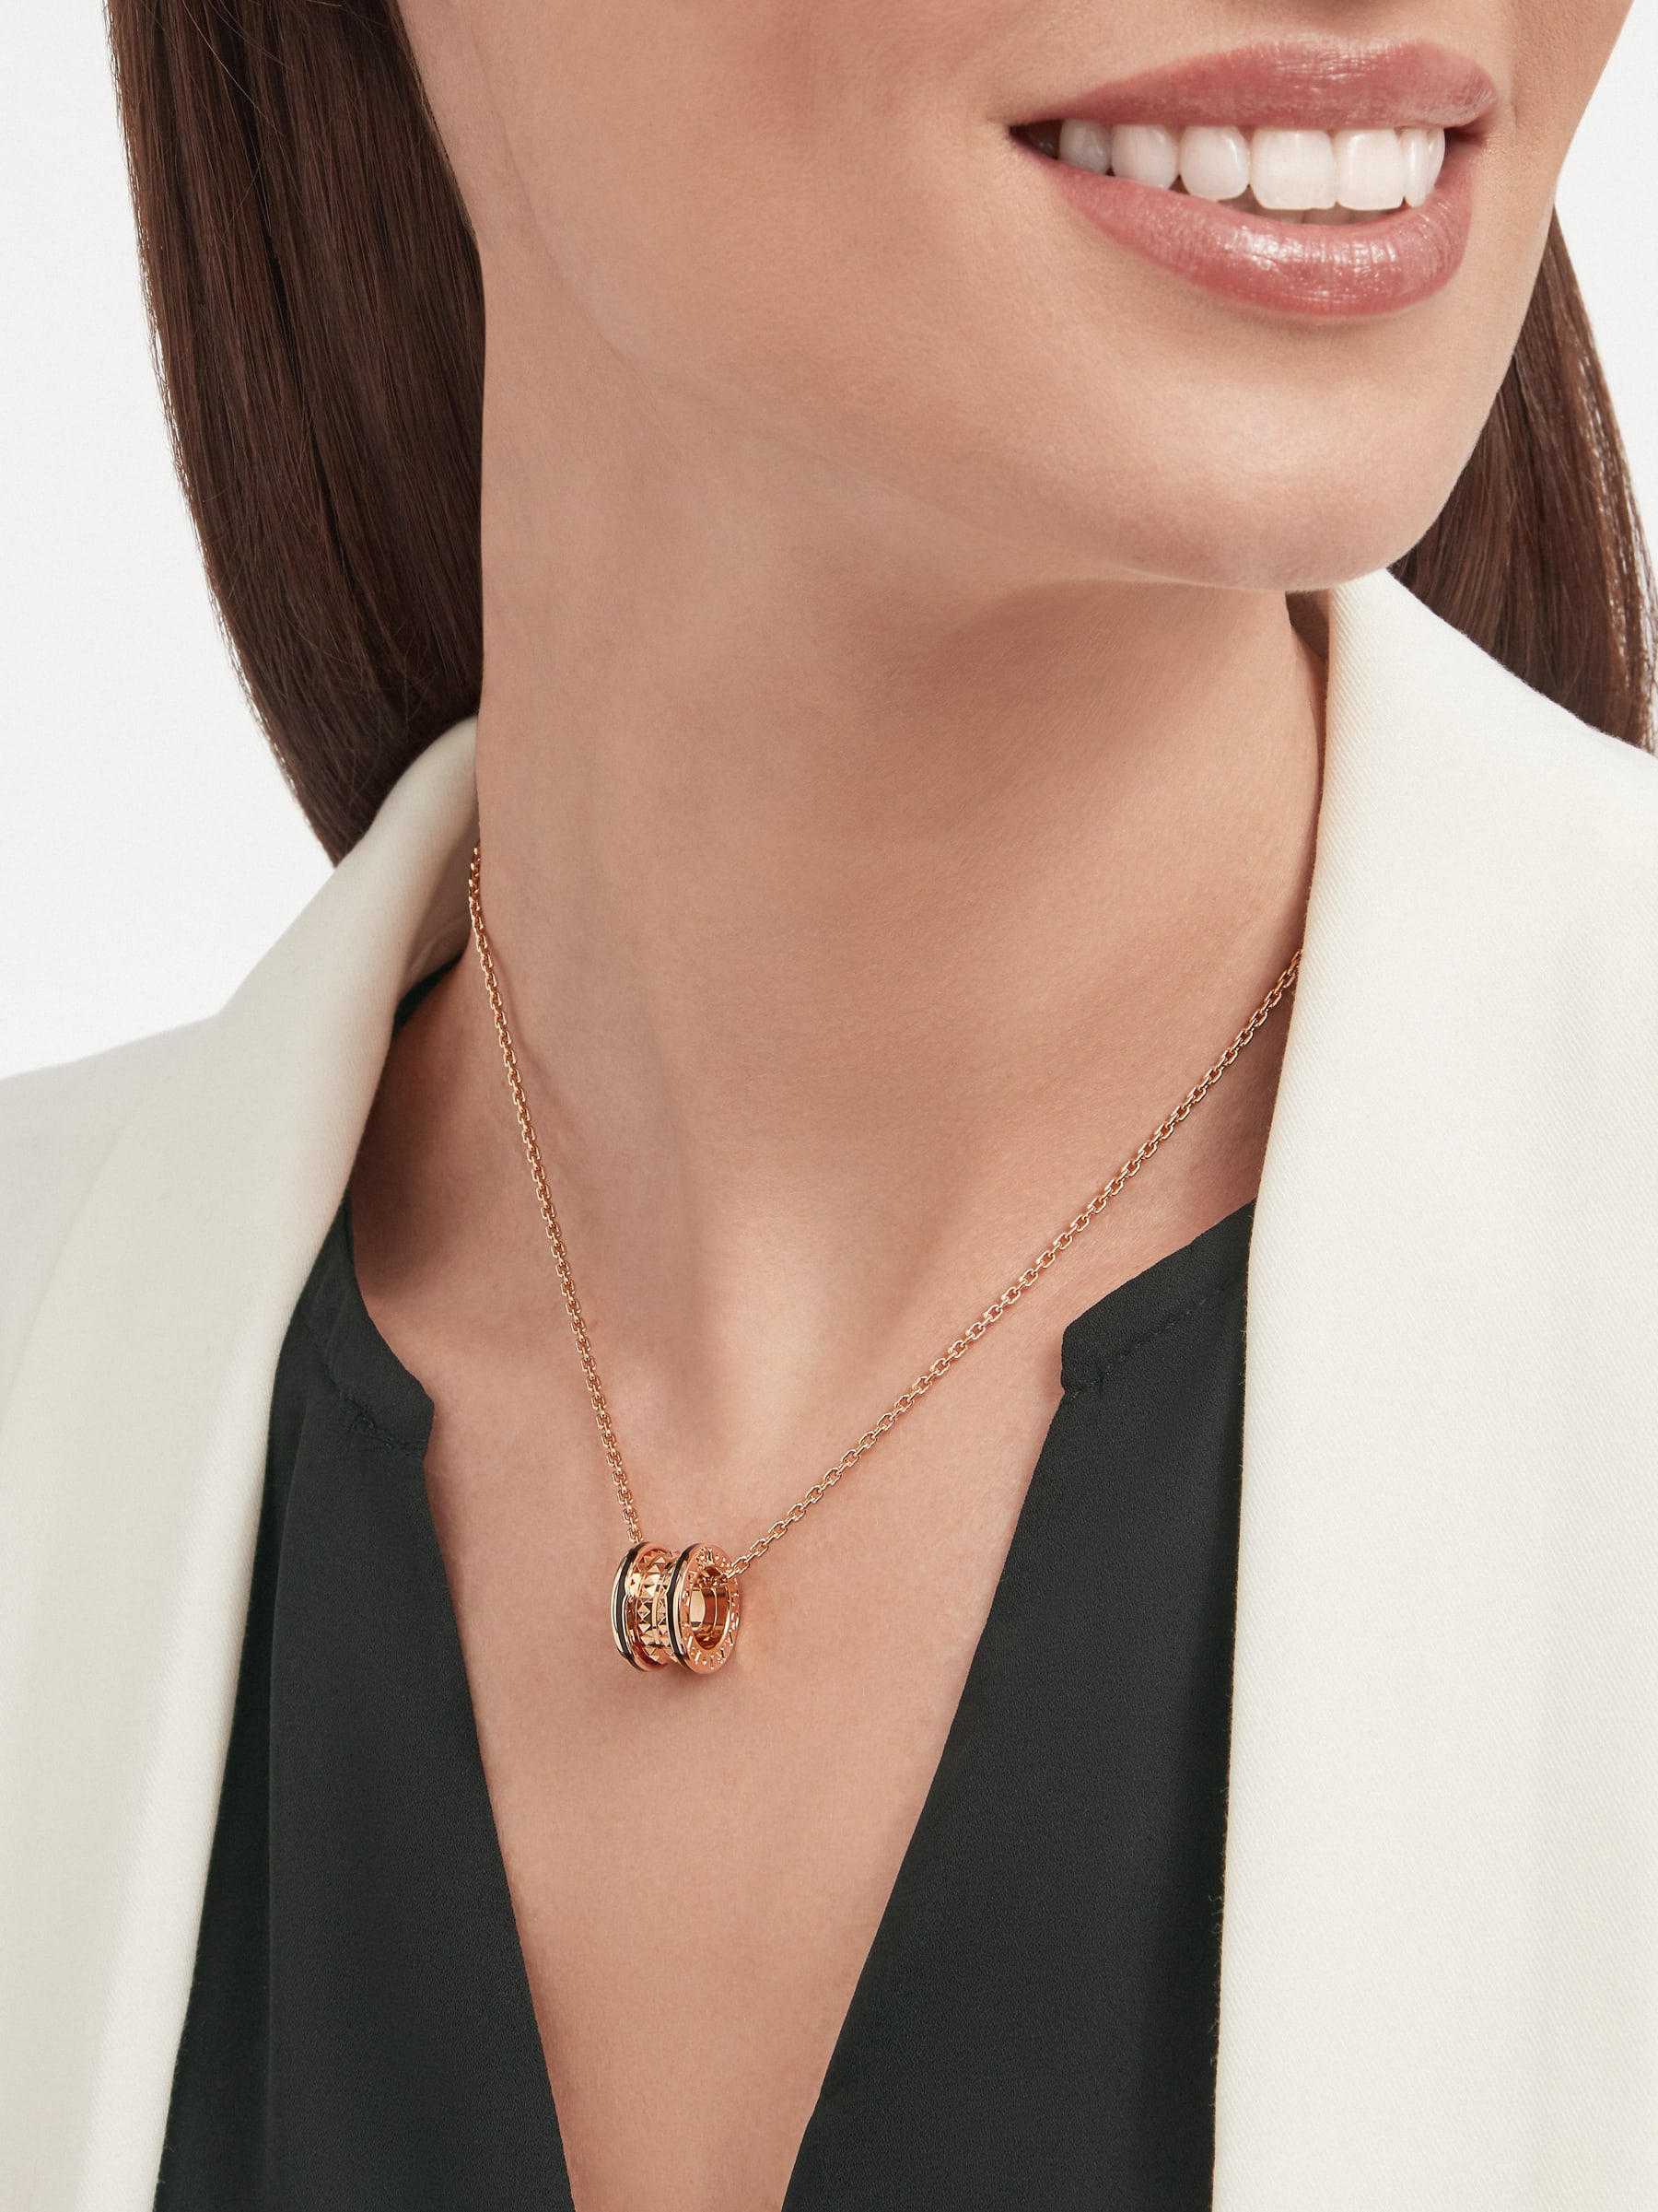 B.zero1 Rock necklace with 18 kt rose gold pendant with studded spiral, black ceramic inserts on the edges and 18 kt rose gold chain 358054 image 4